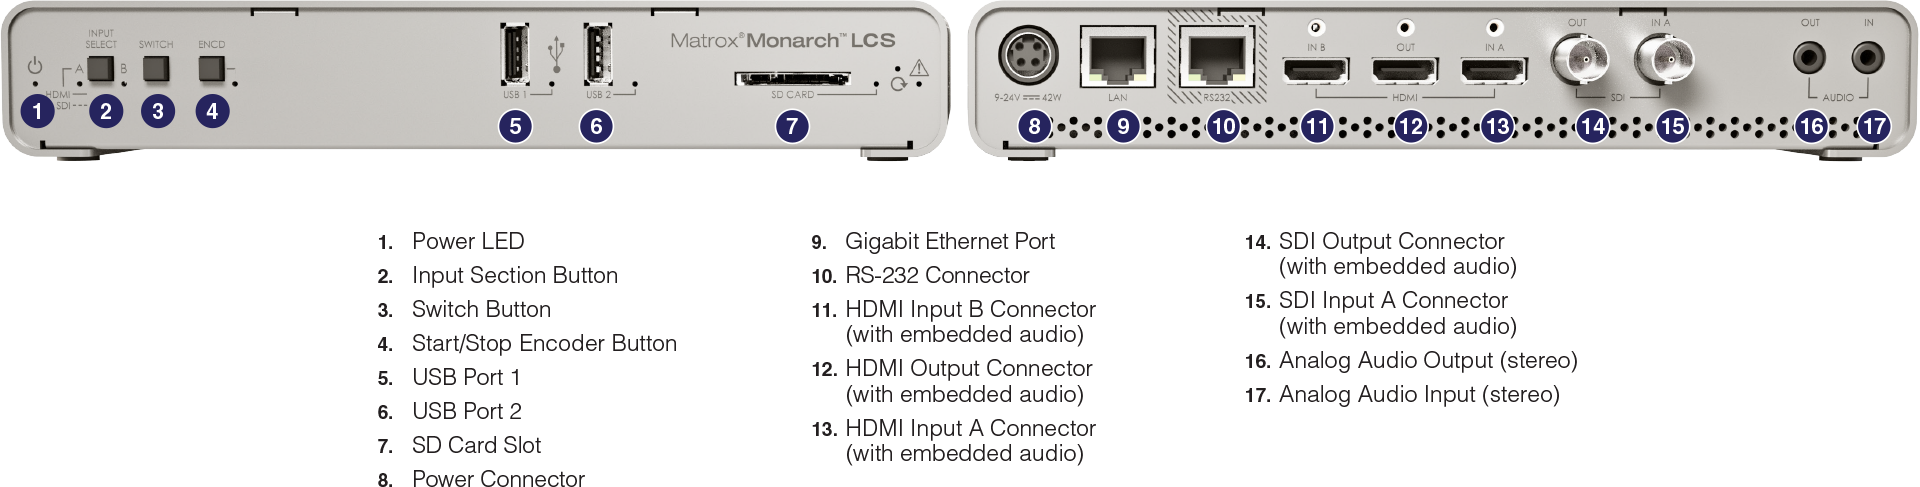 Monarch LCS Connections